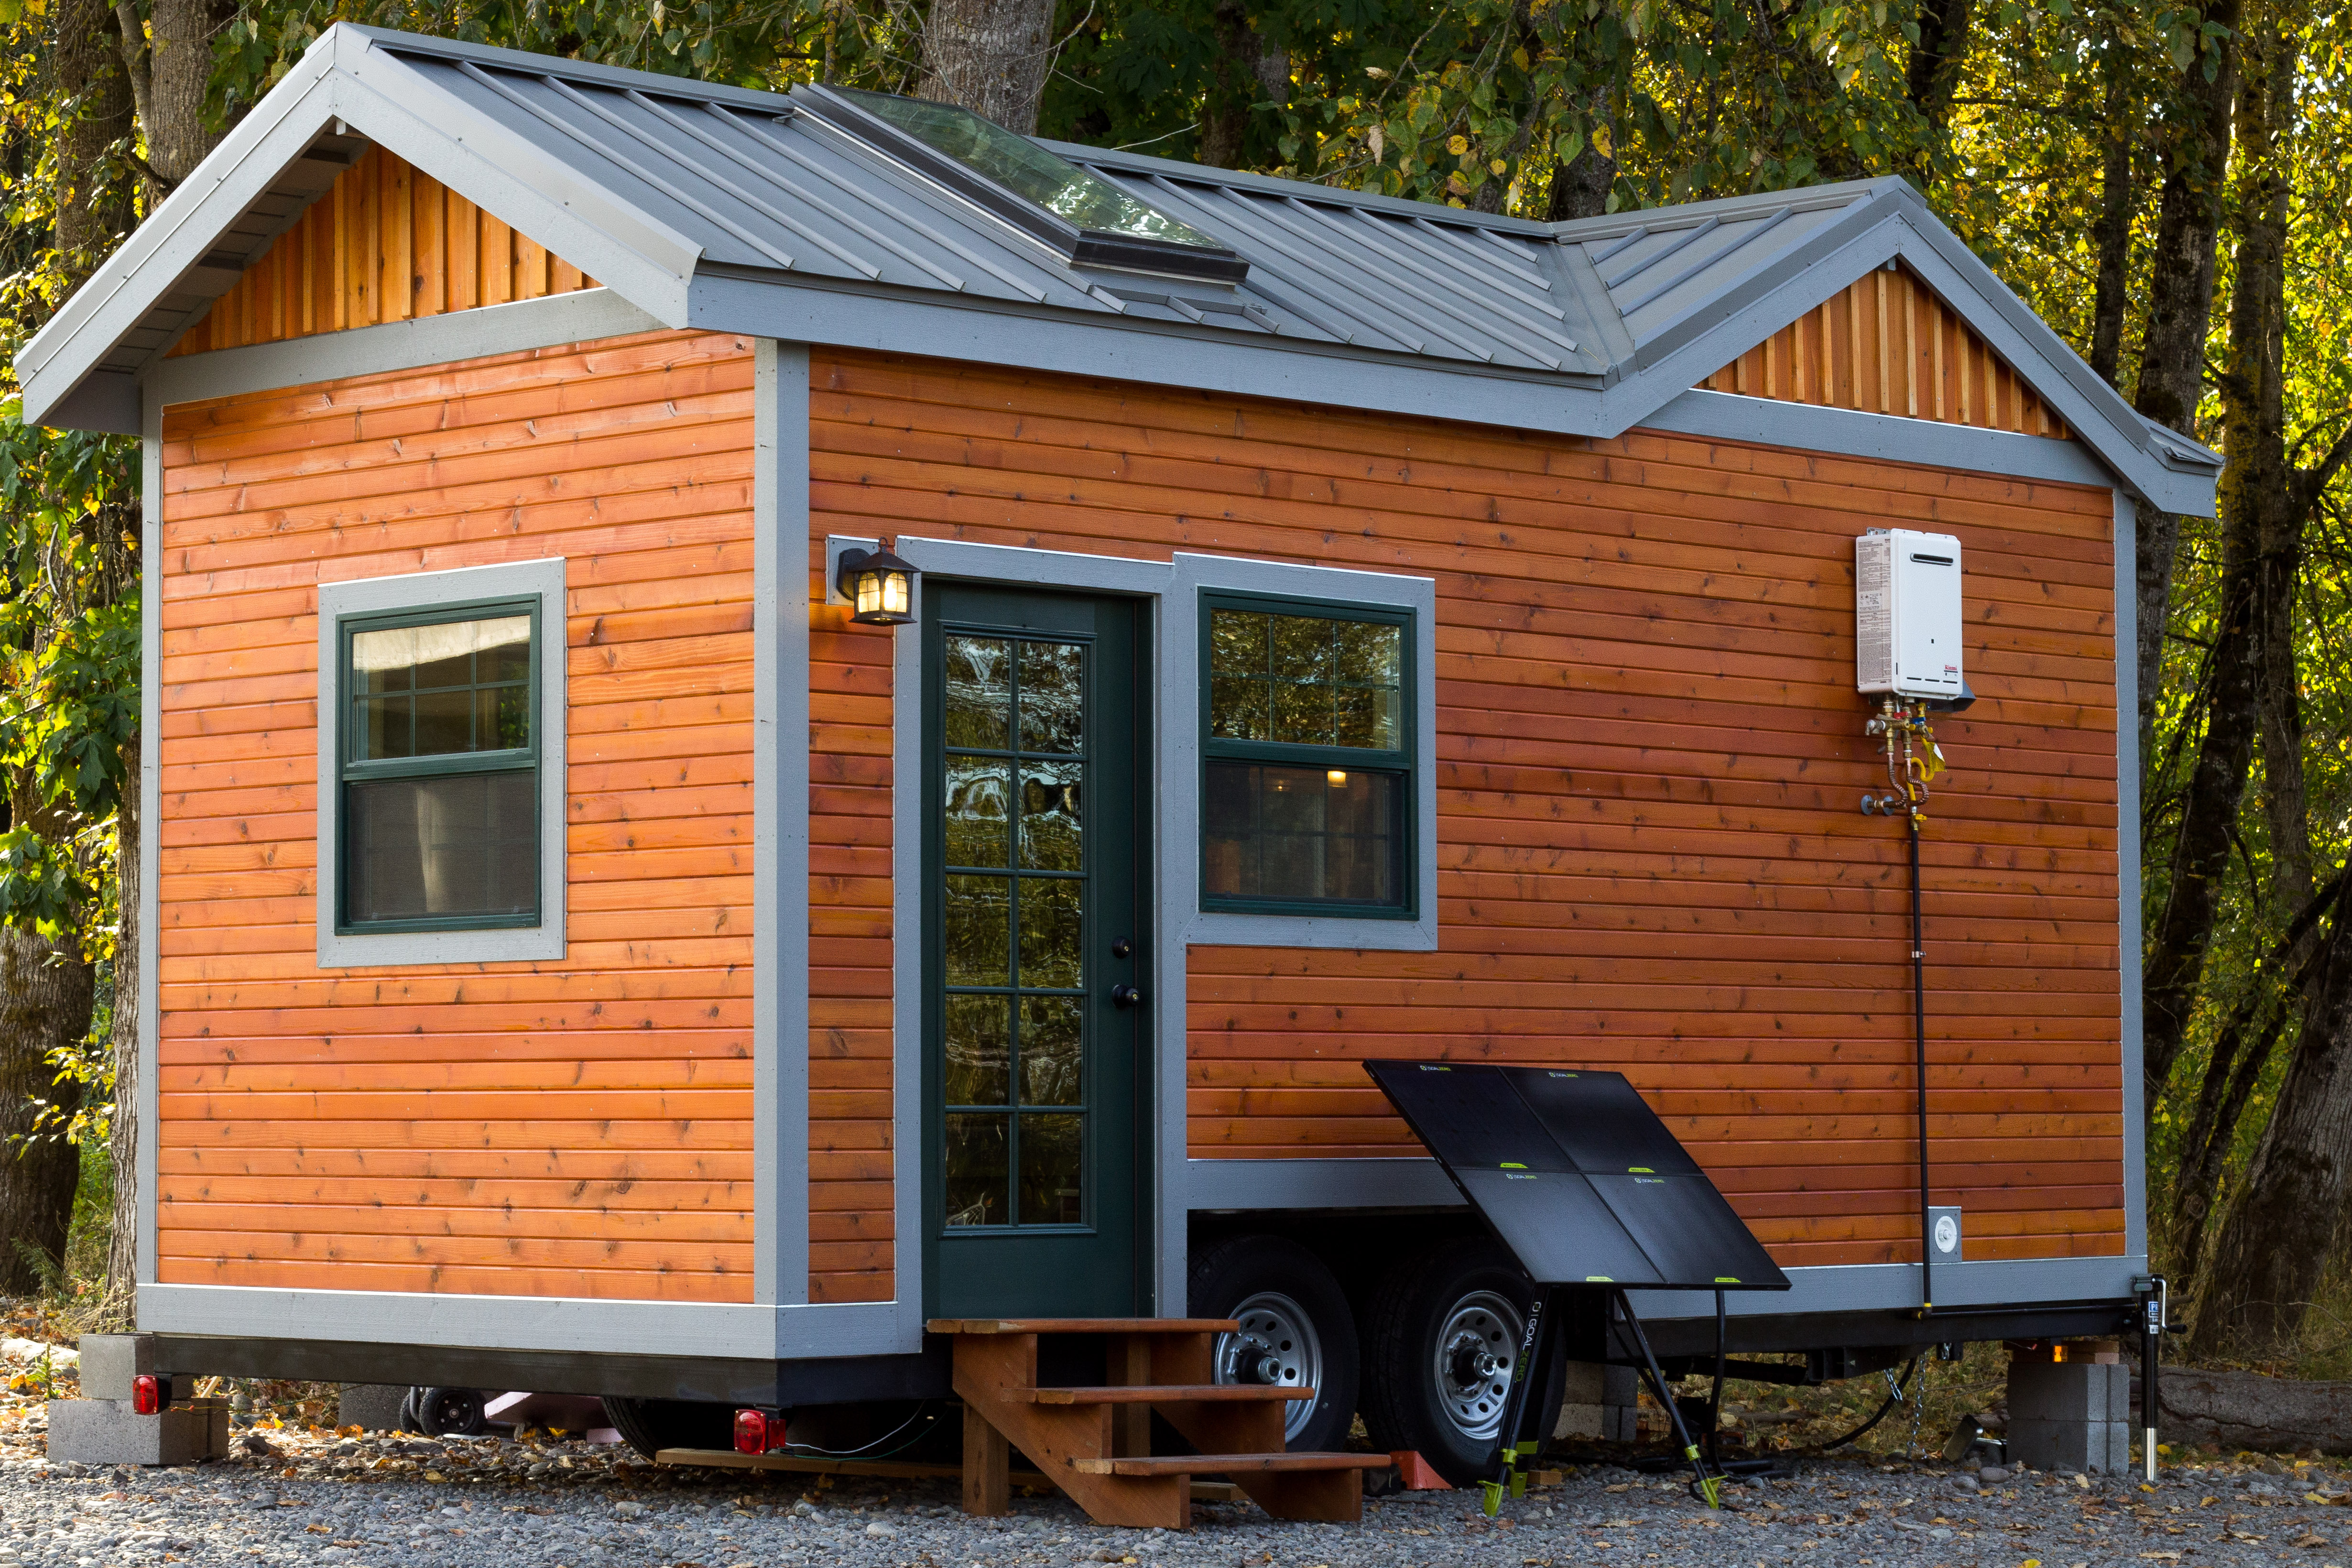 Oregon Trail Tiny Smart House